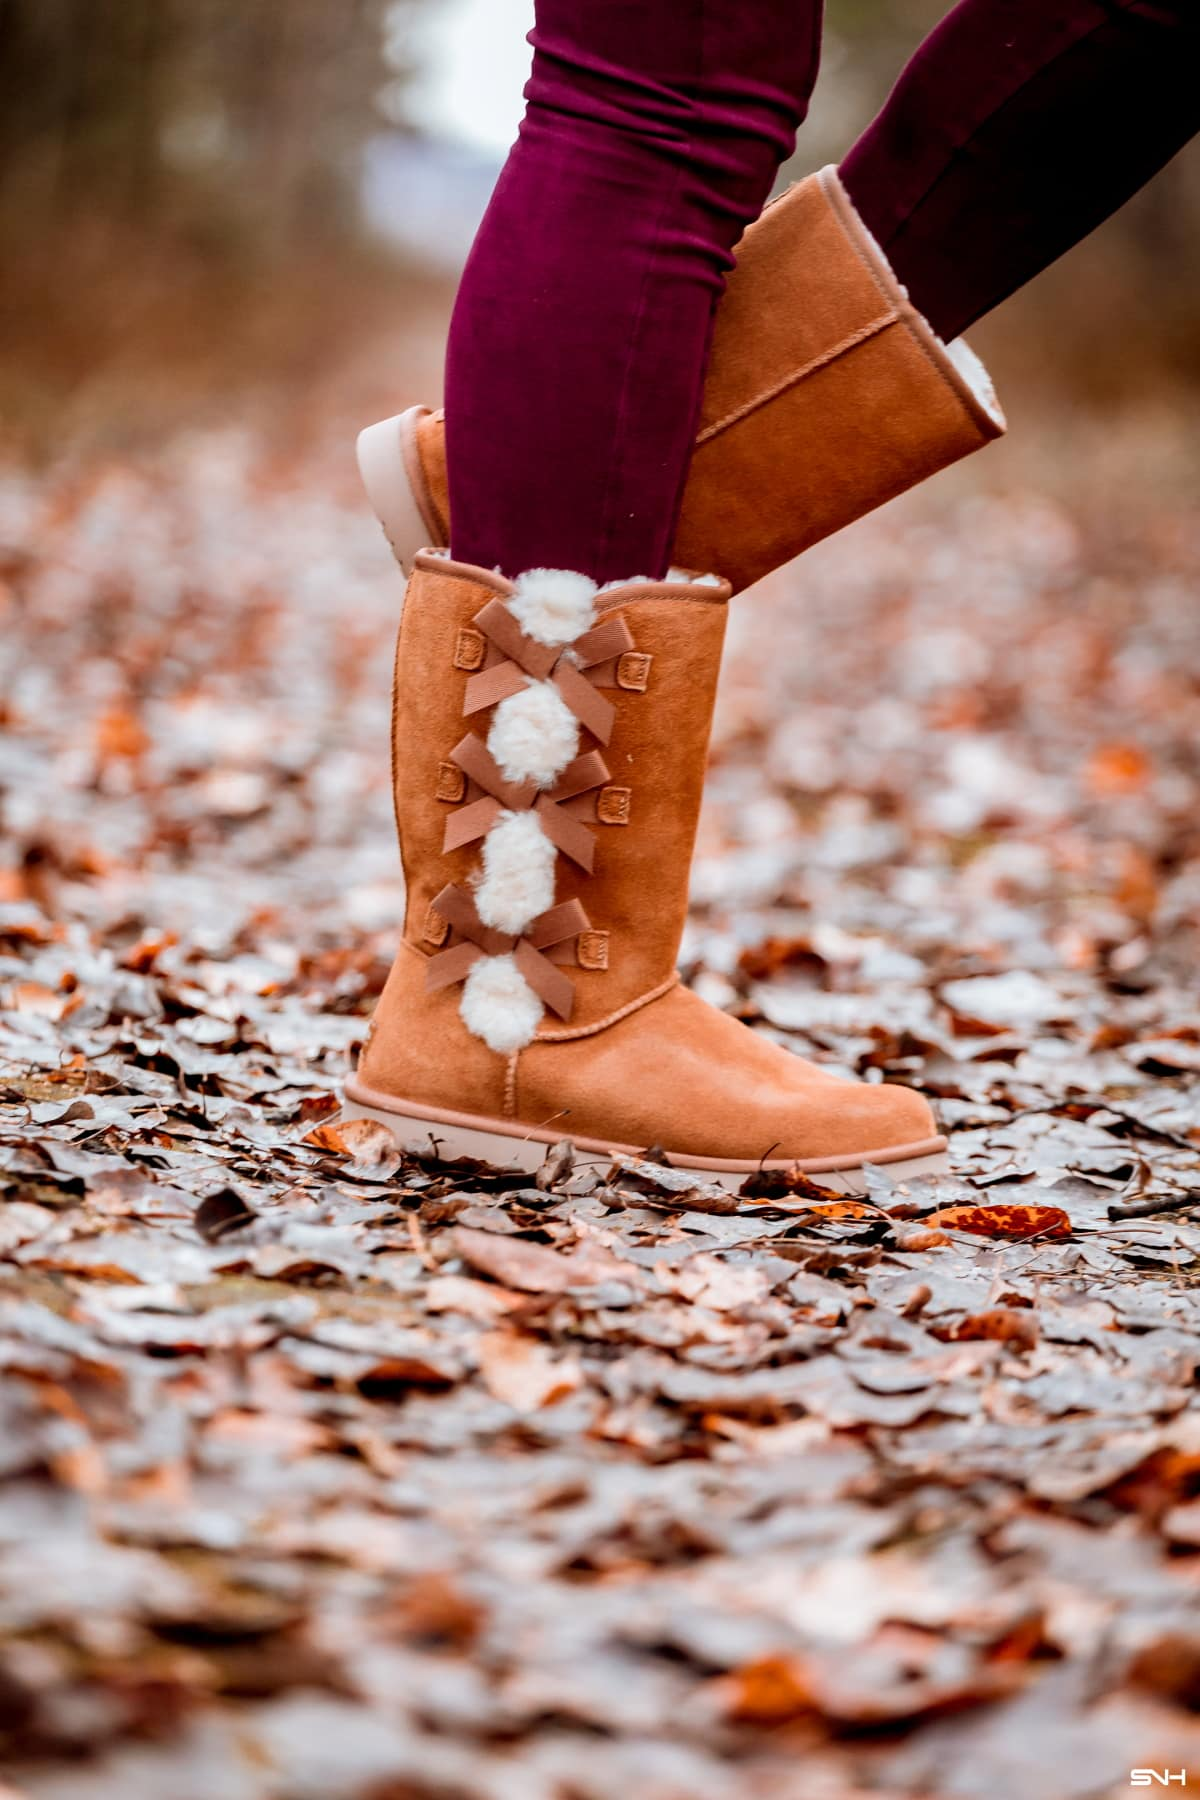 #uggs Not ready to splurge on Ugg boots this year? Save $$$ by getting one of these cheap Ugg boots like Bearpaw, CLPP'LI, Dawgs, Ausland, or Dream Pairs. My favorites are #2, #7, and #5! #bearpaw #wintershoes